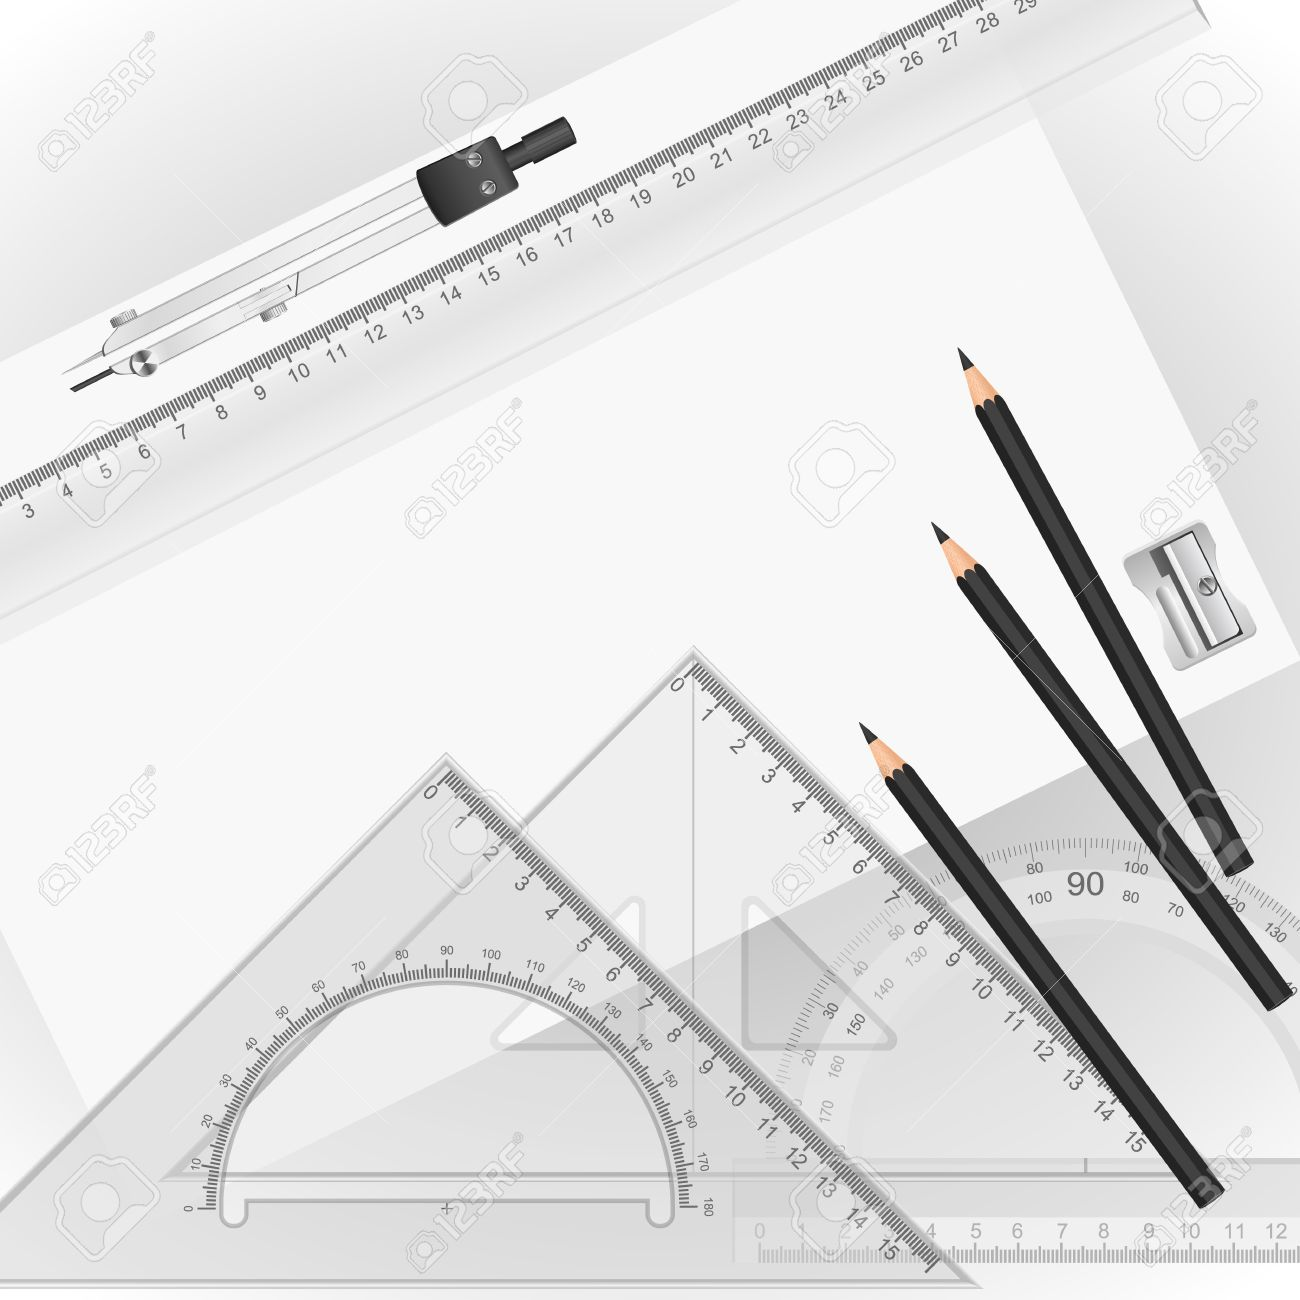 Architecture Drawing Tools Detail And Several Throughout Ideas 21725226 With A In The